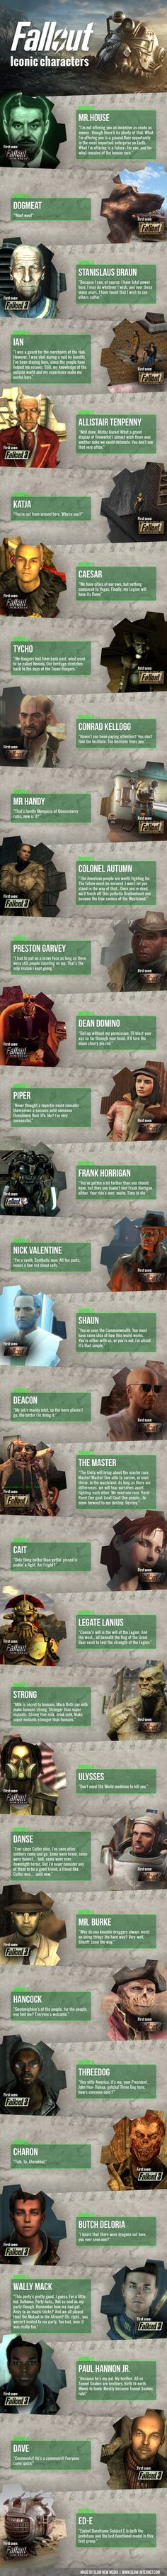 Fallout Iconic Characters - Anticipating the newest Fallout release, we put together something to remember some of our favourite characters. Fallout Tips, Fallout Lore, Fallout Facts, Fallout Funny, Fallout Fan Art, Fallout Concept Art, Video Game Art, Video Games, Fallout Cosplay